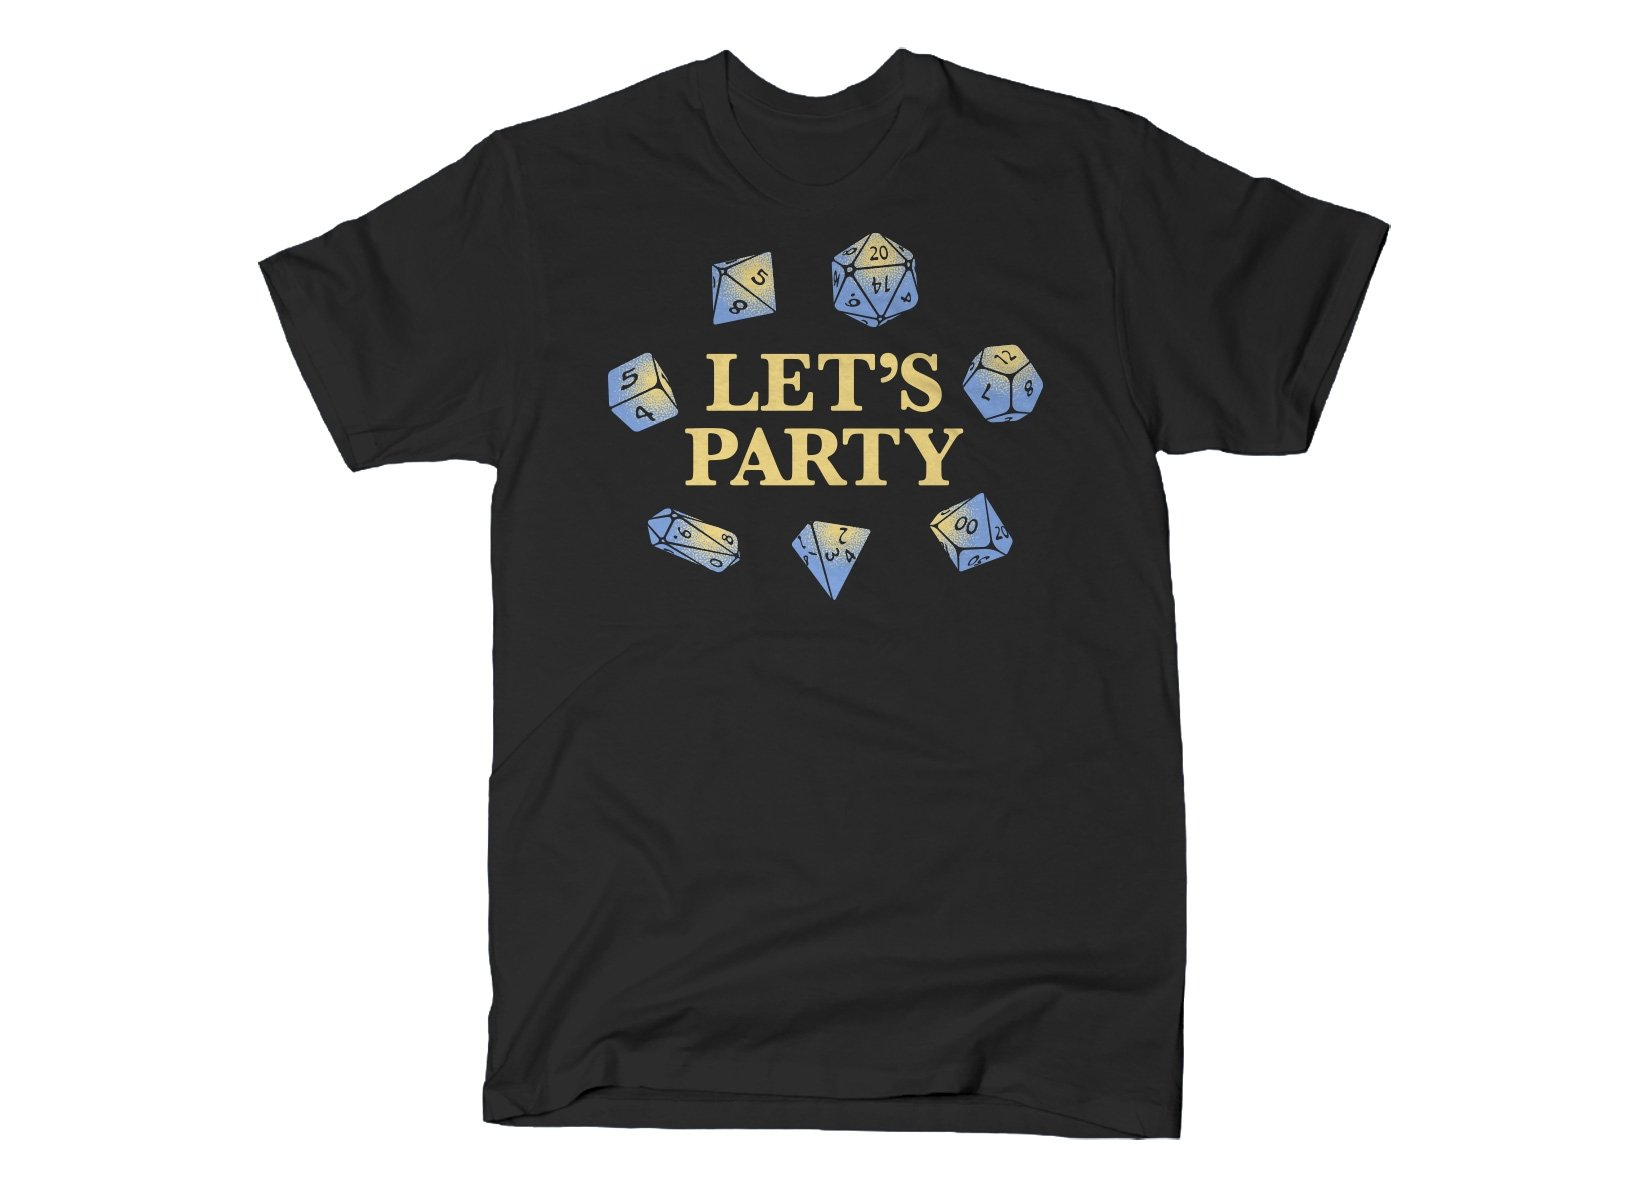 Let's Party Dice on Mens T-Shirt